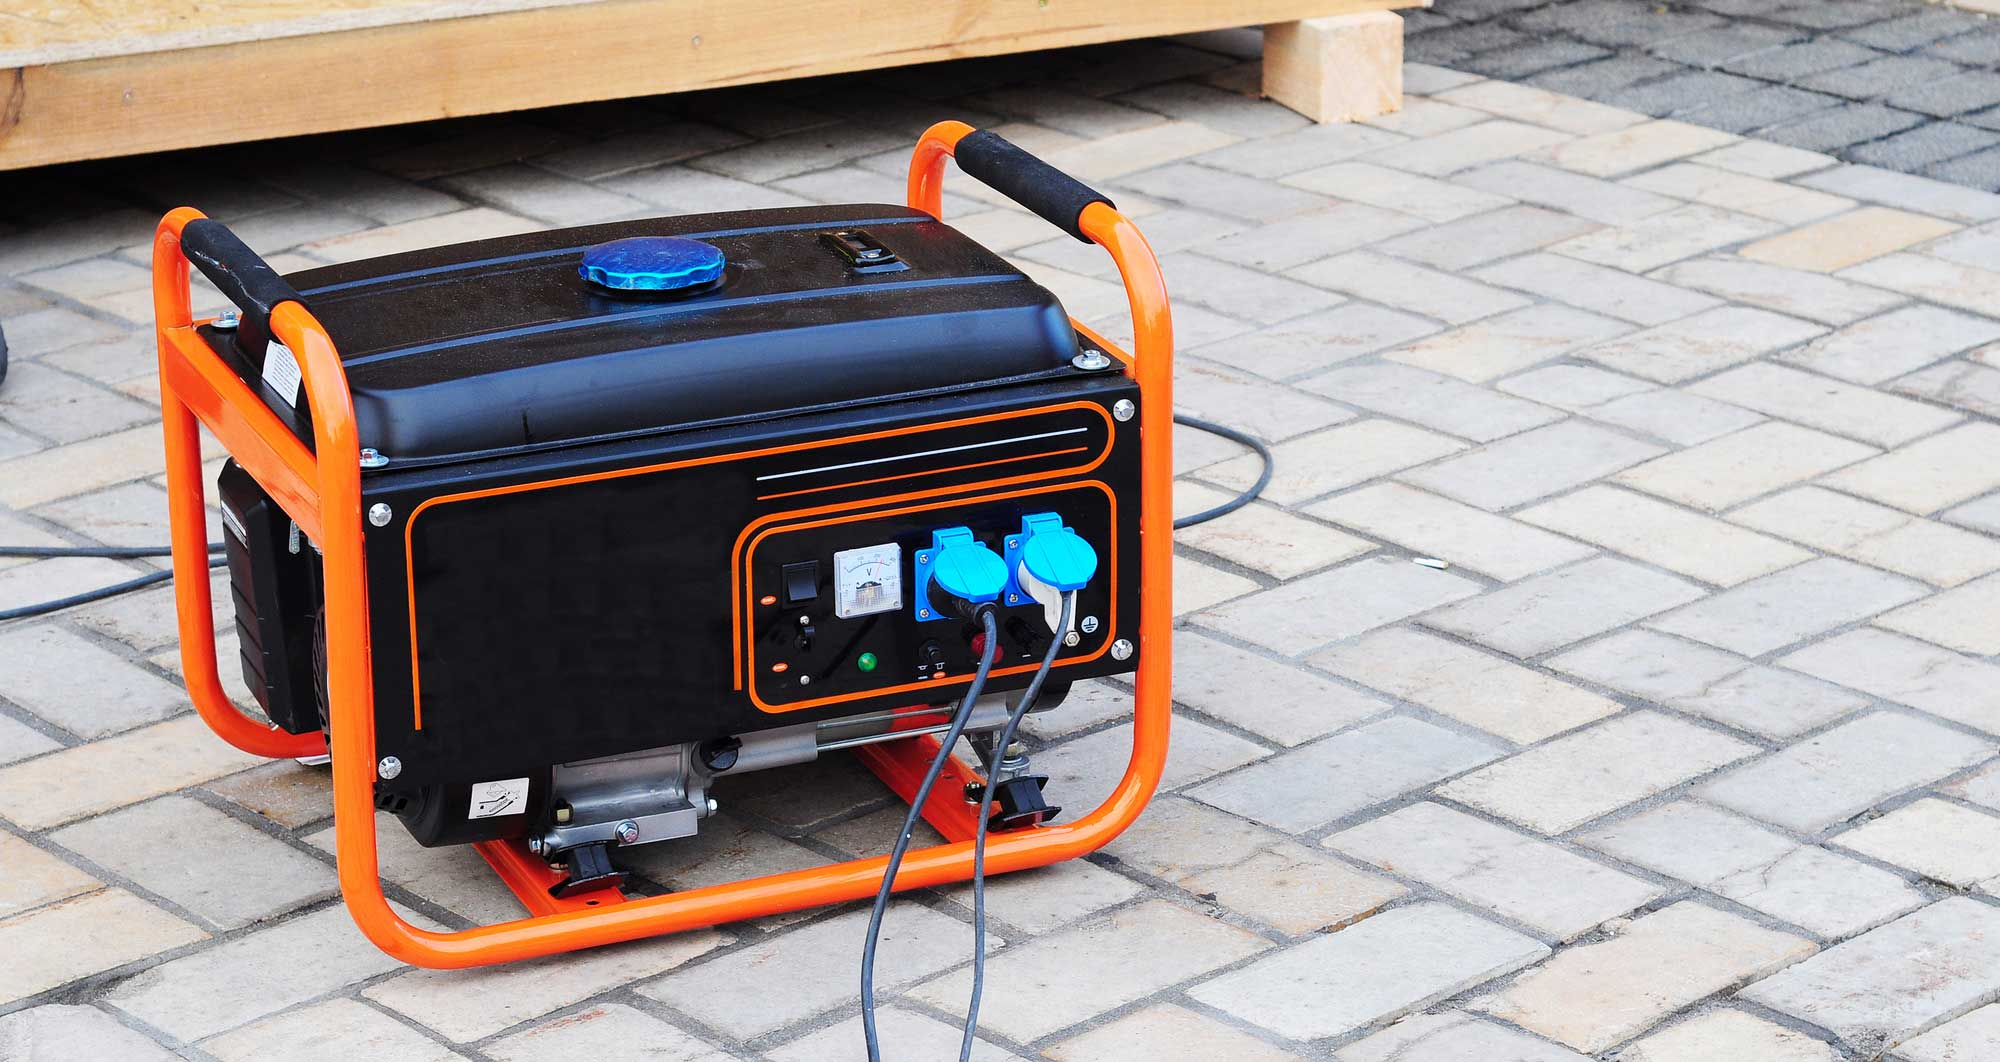 Portable generator on a brick patio